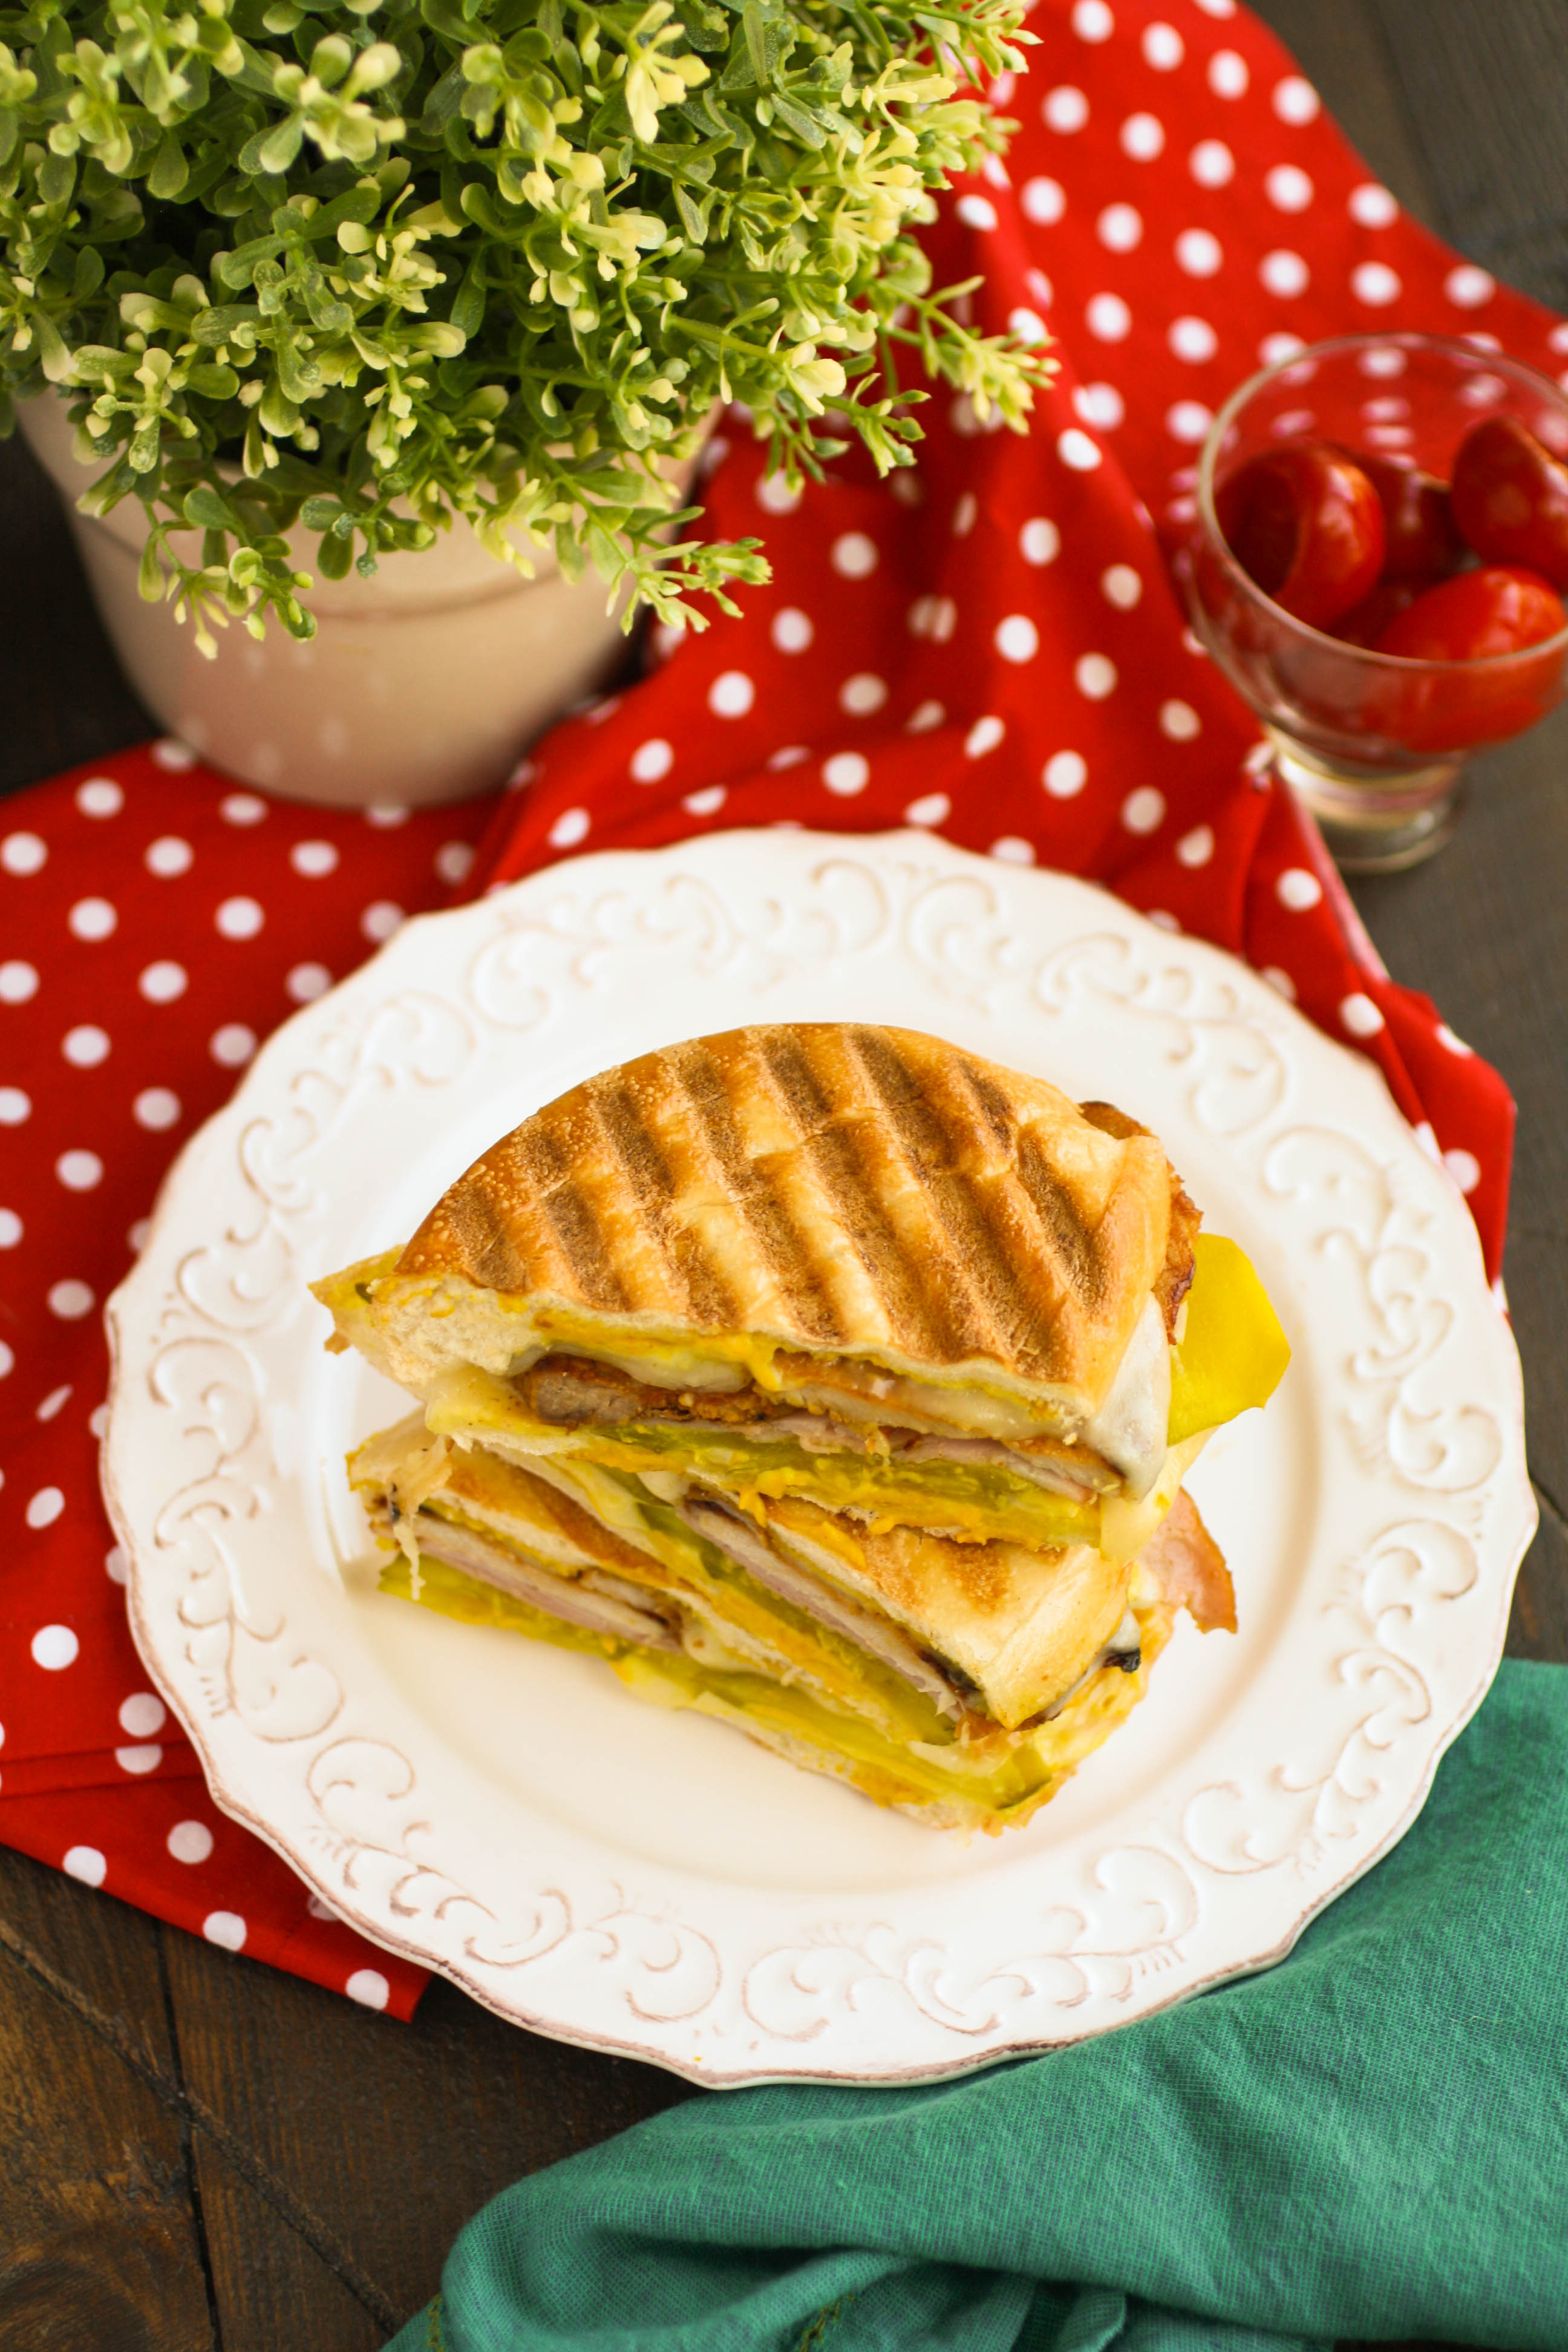 Make a Cuban Sandwich for your next meal! You'll be glad you did!